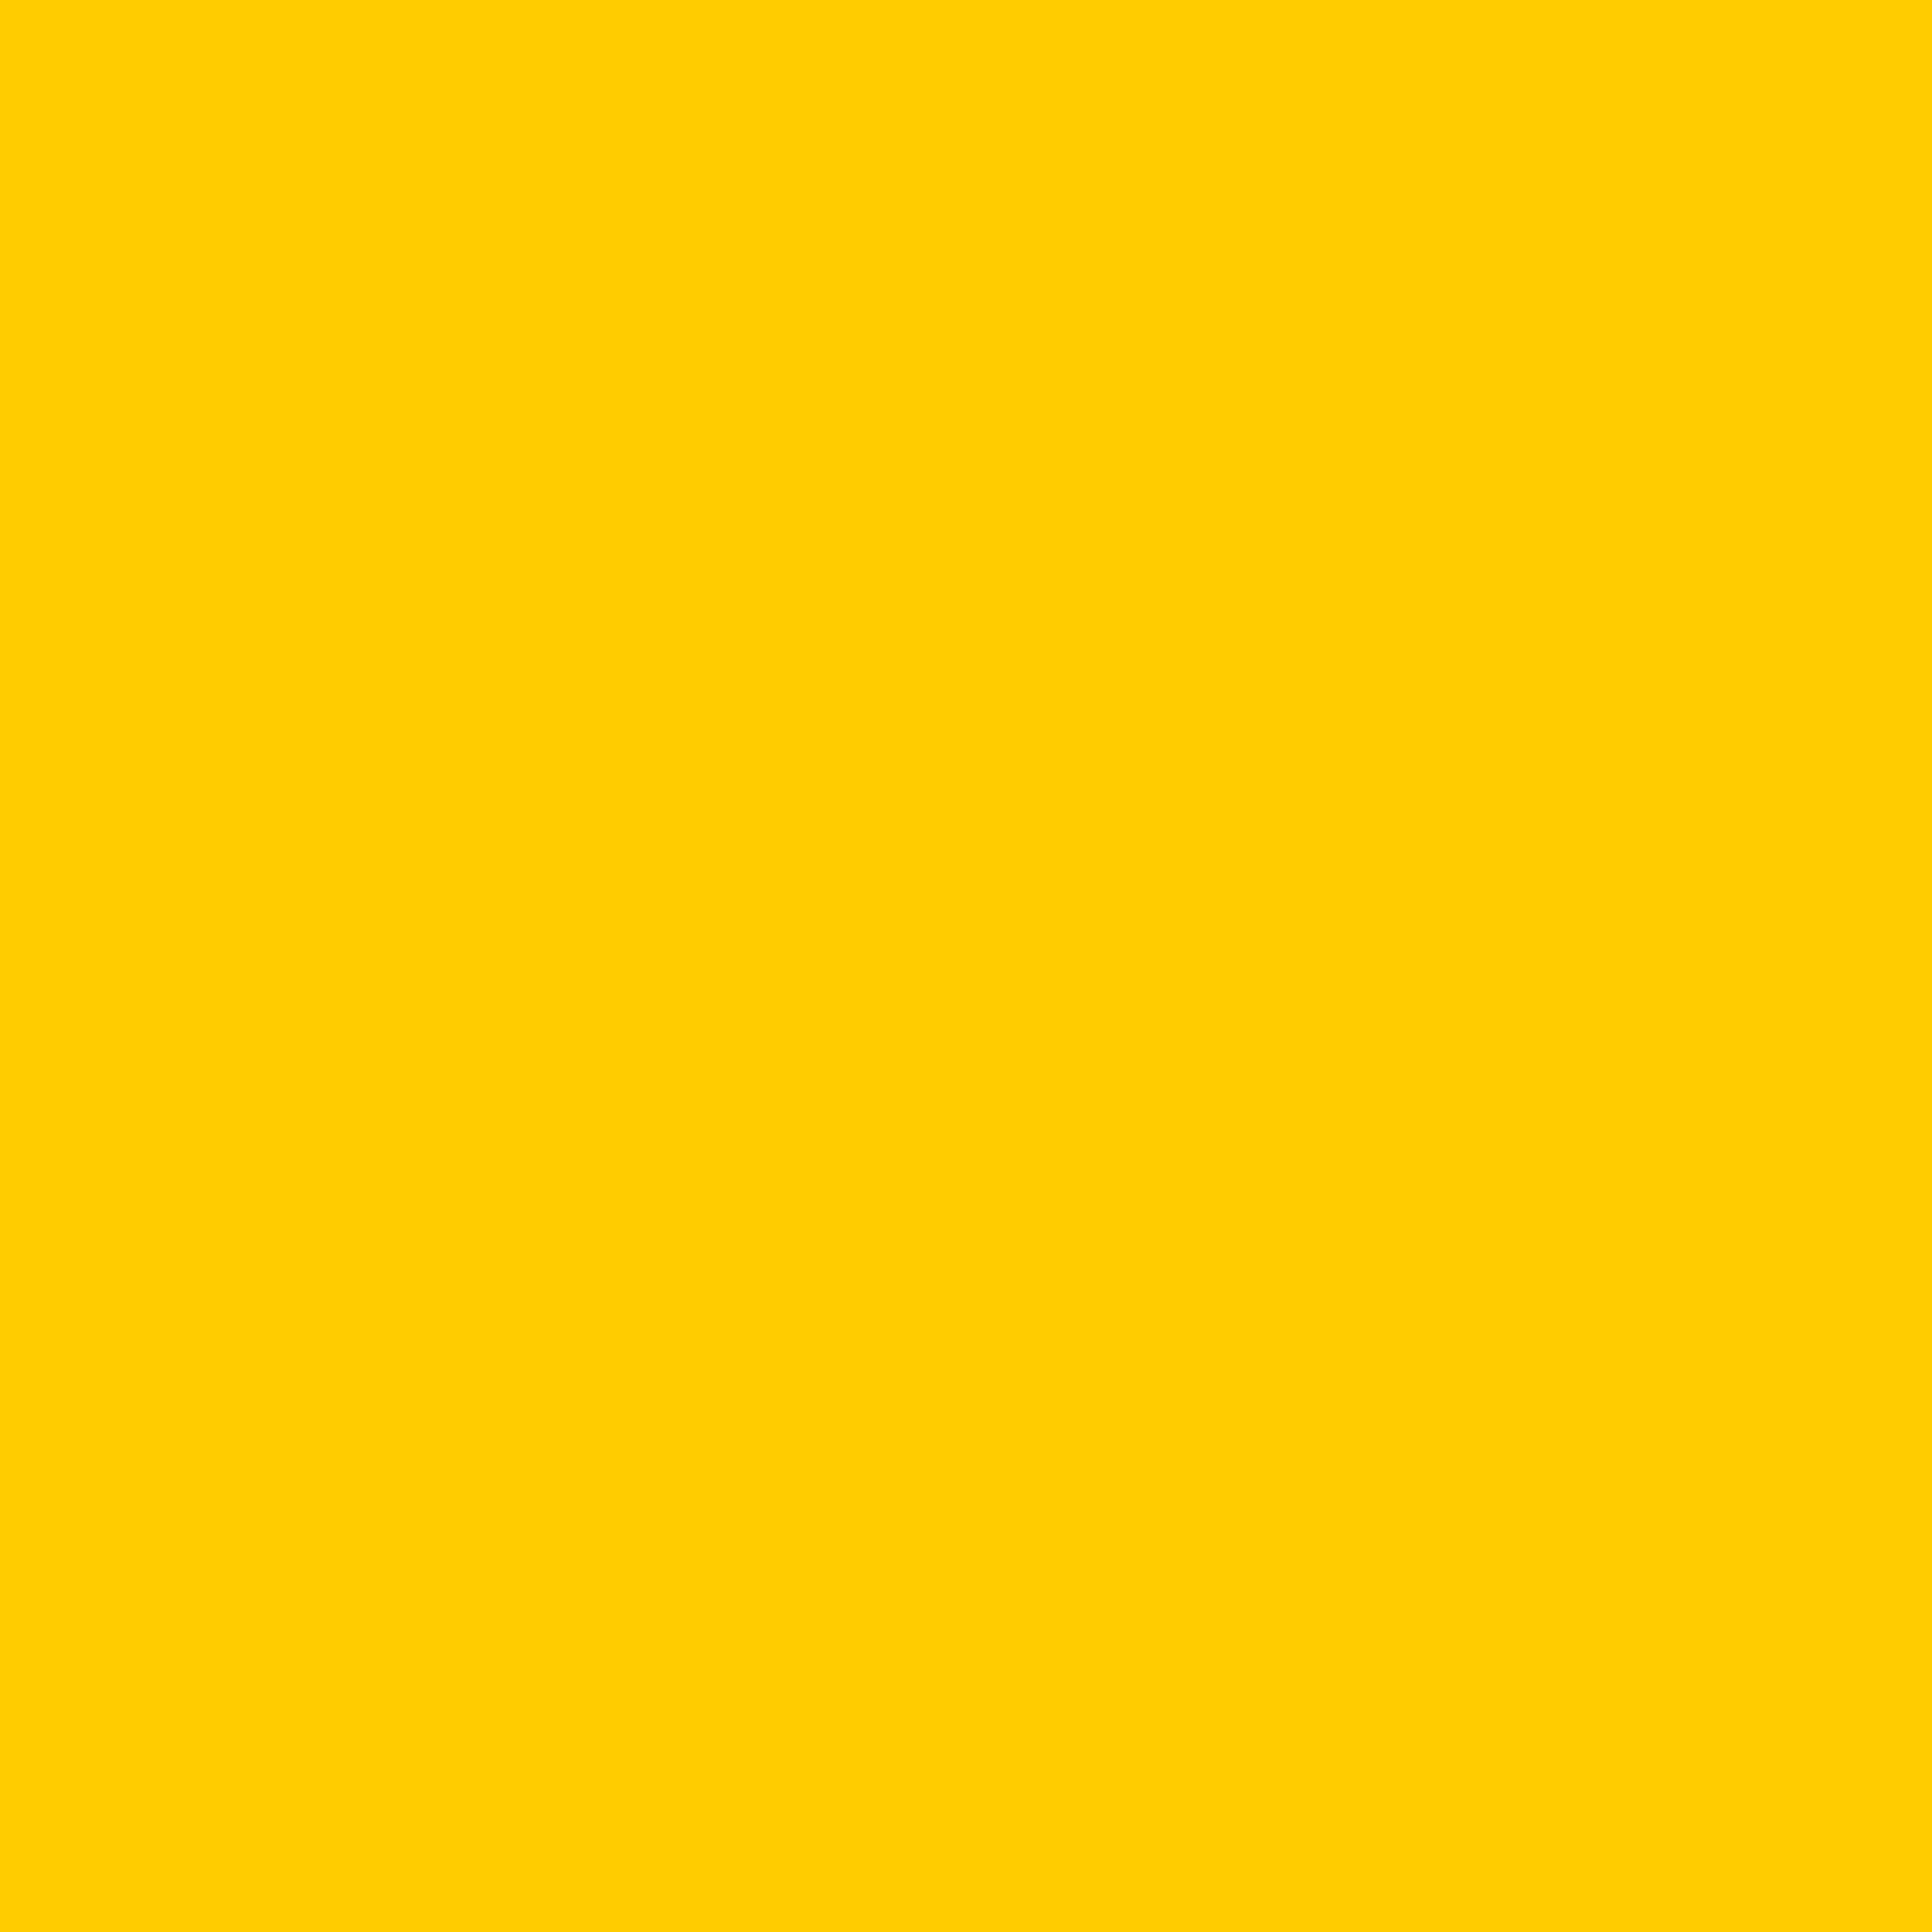 3600x3600 Tangerine Yellow Solid Color Background